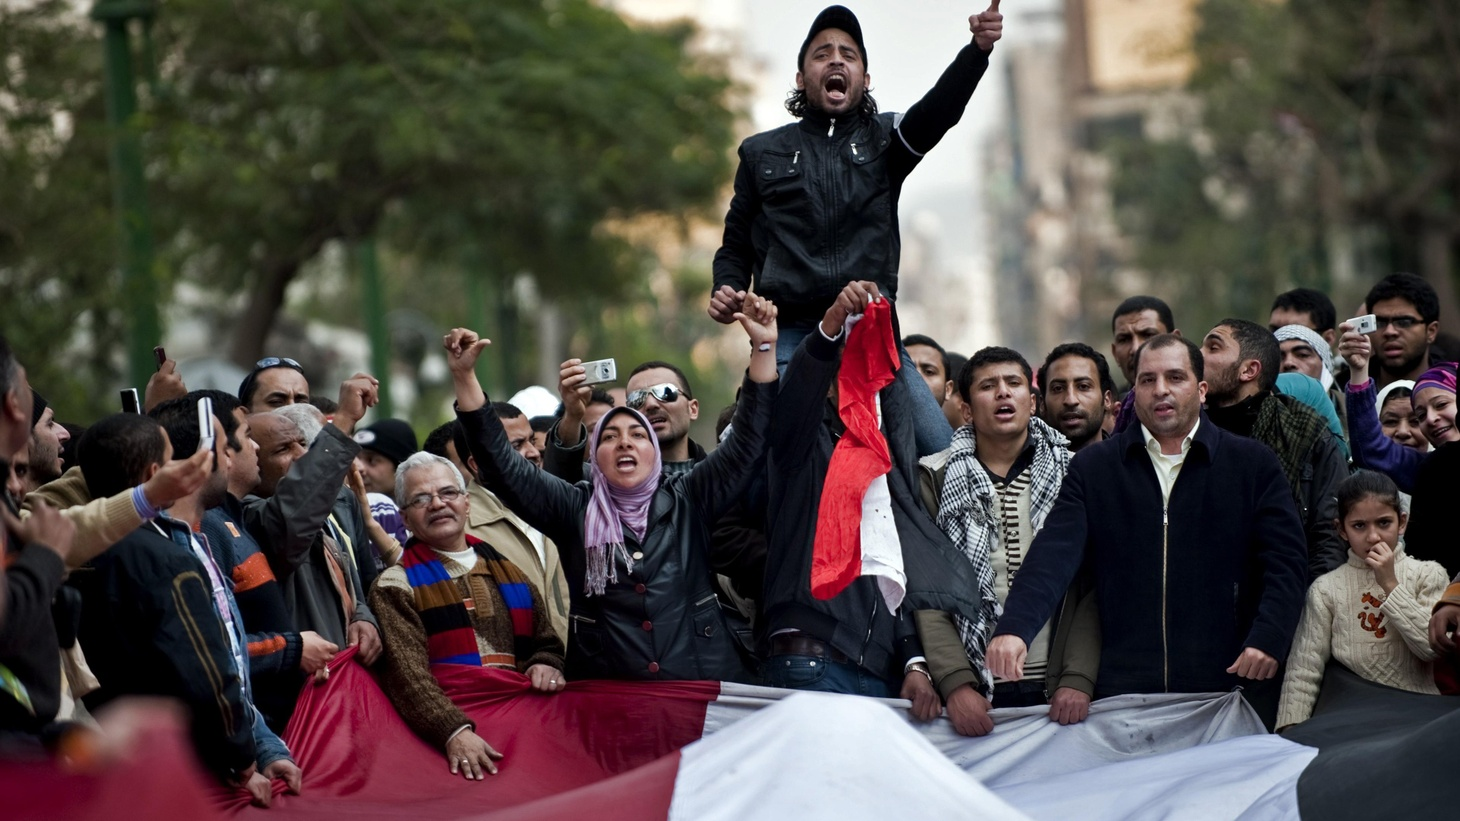 Protests are spreading in Cairo and other cities. Workers have gone on strike—but it's not clear if they share the goal of regime change.